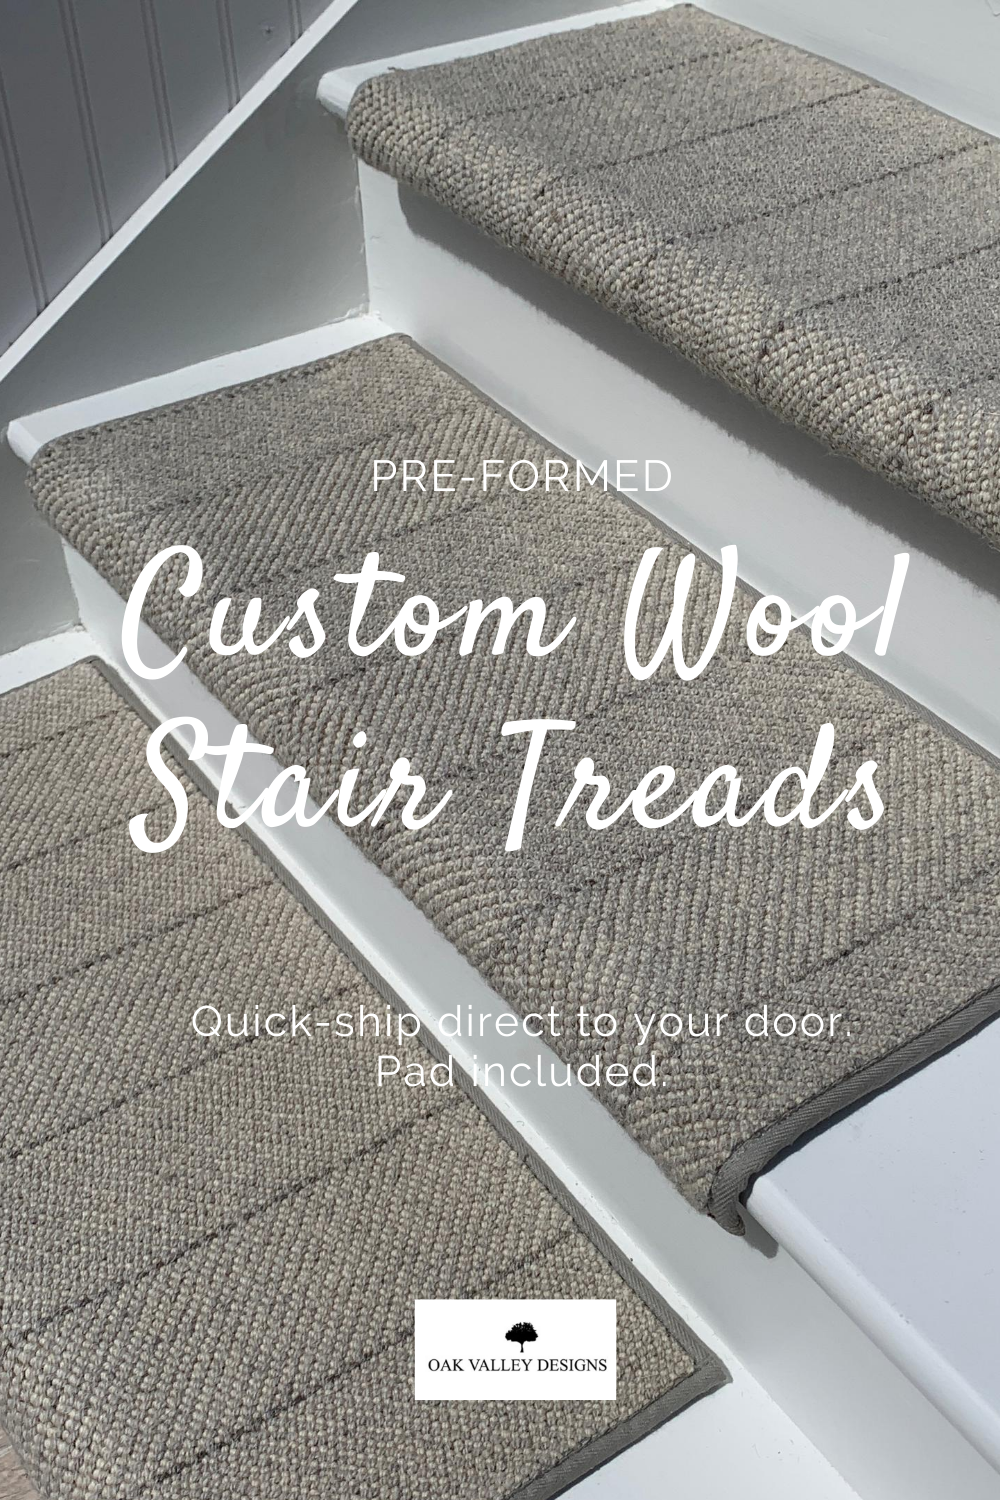 New Oak Valley Wool Tailored Stripe Oak Valley Designs In 2020 Stair Treads Carpet Stairs Carpet Stair Treads